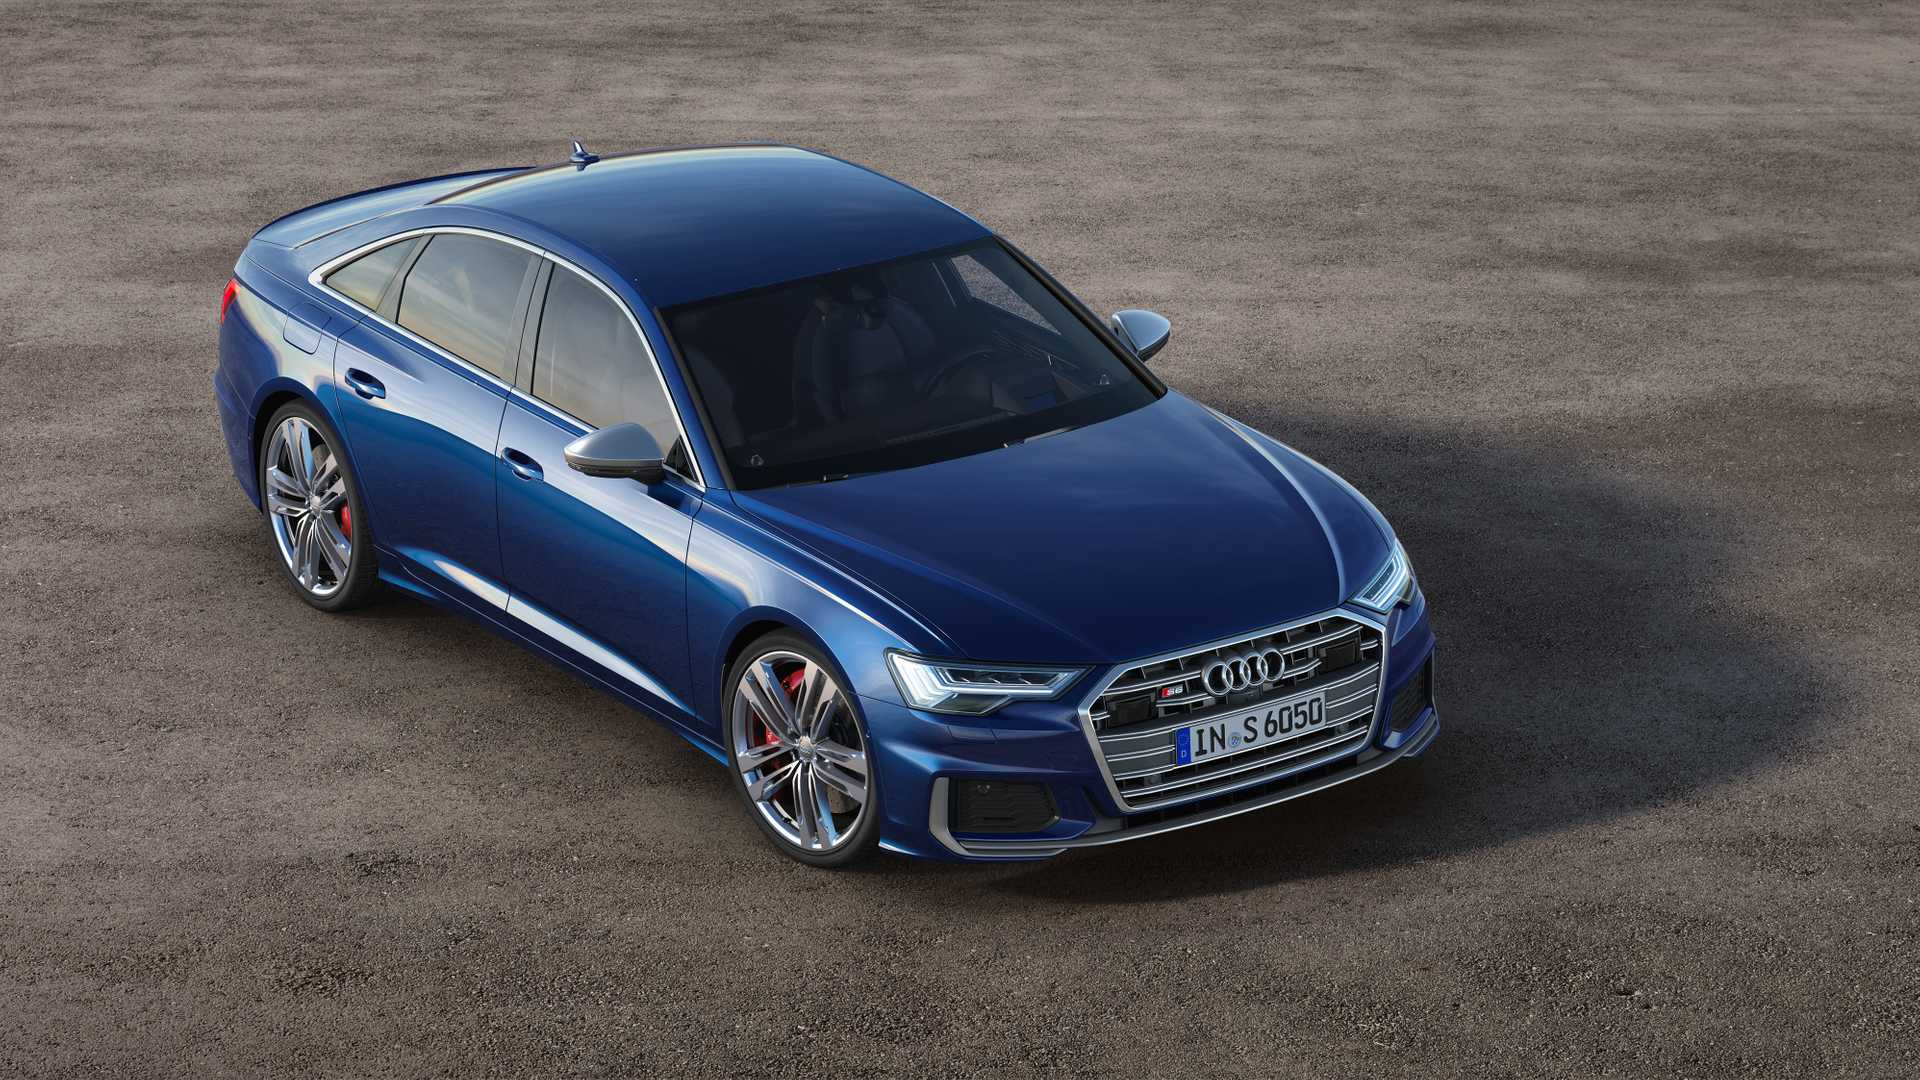 2020 Audi S6 Review.2020 Audi S6 Is More Affordable Than The Bmw M550i In The U S